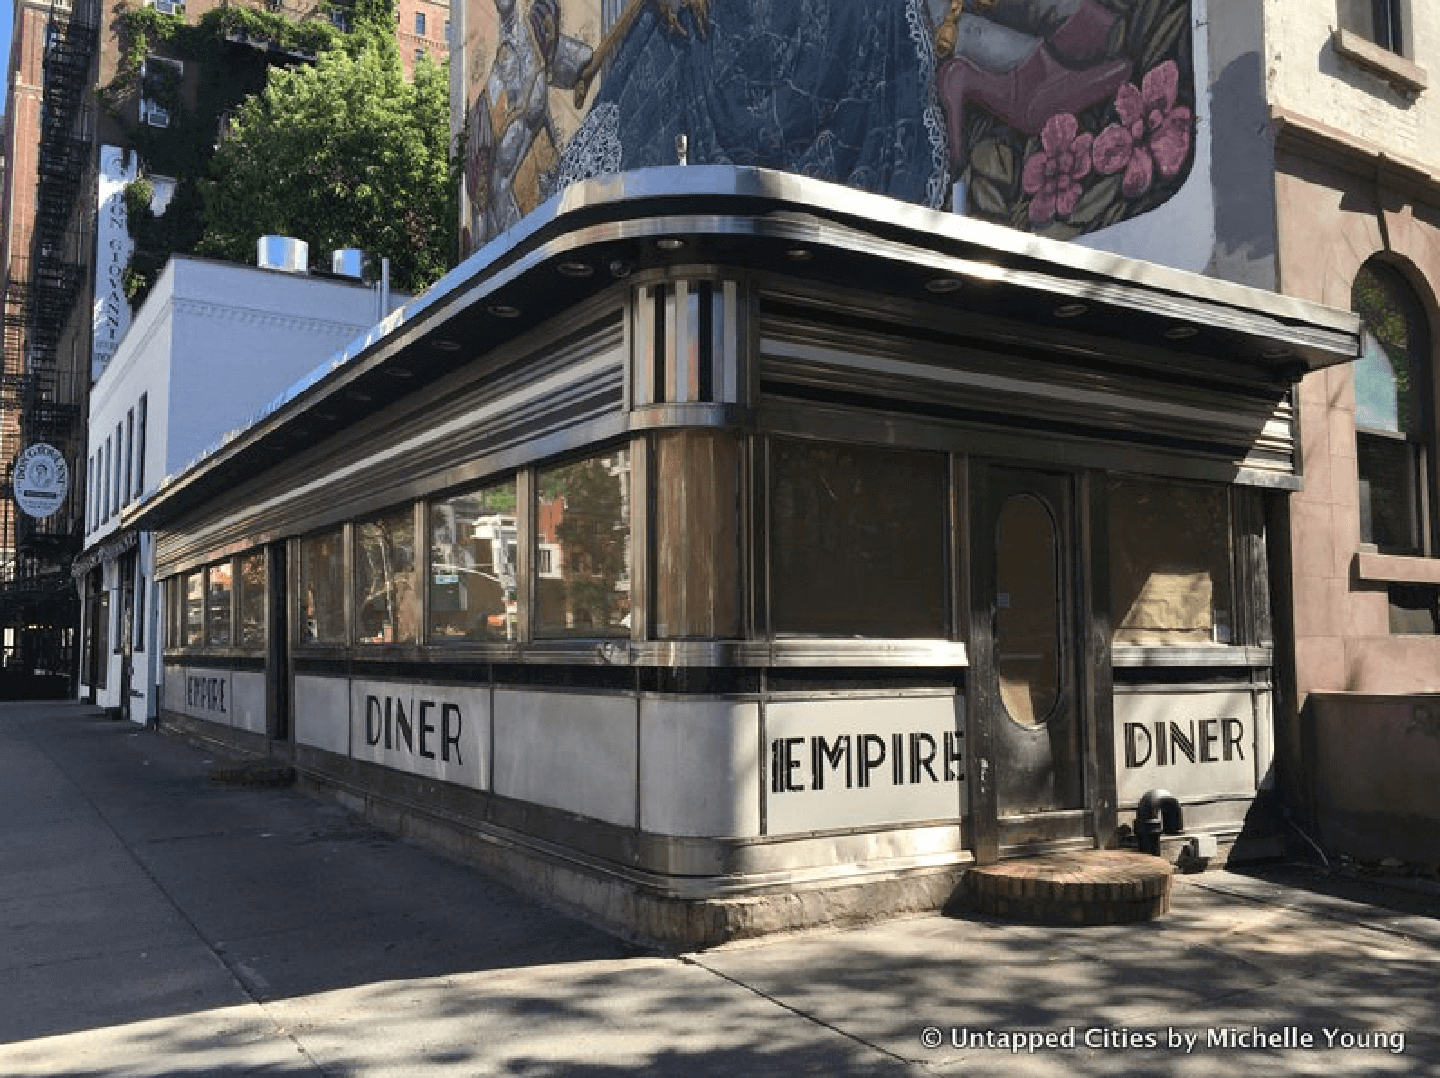 Curiosity City Secrets Empire Diner by Untapped Cities